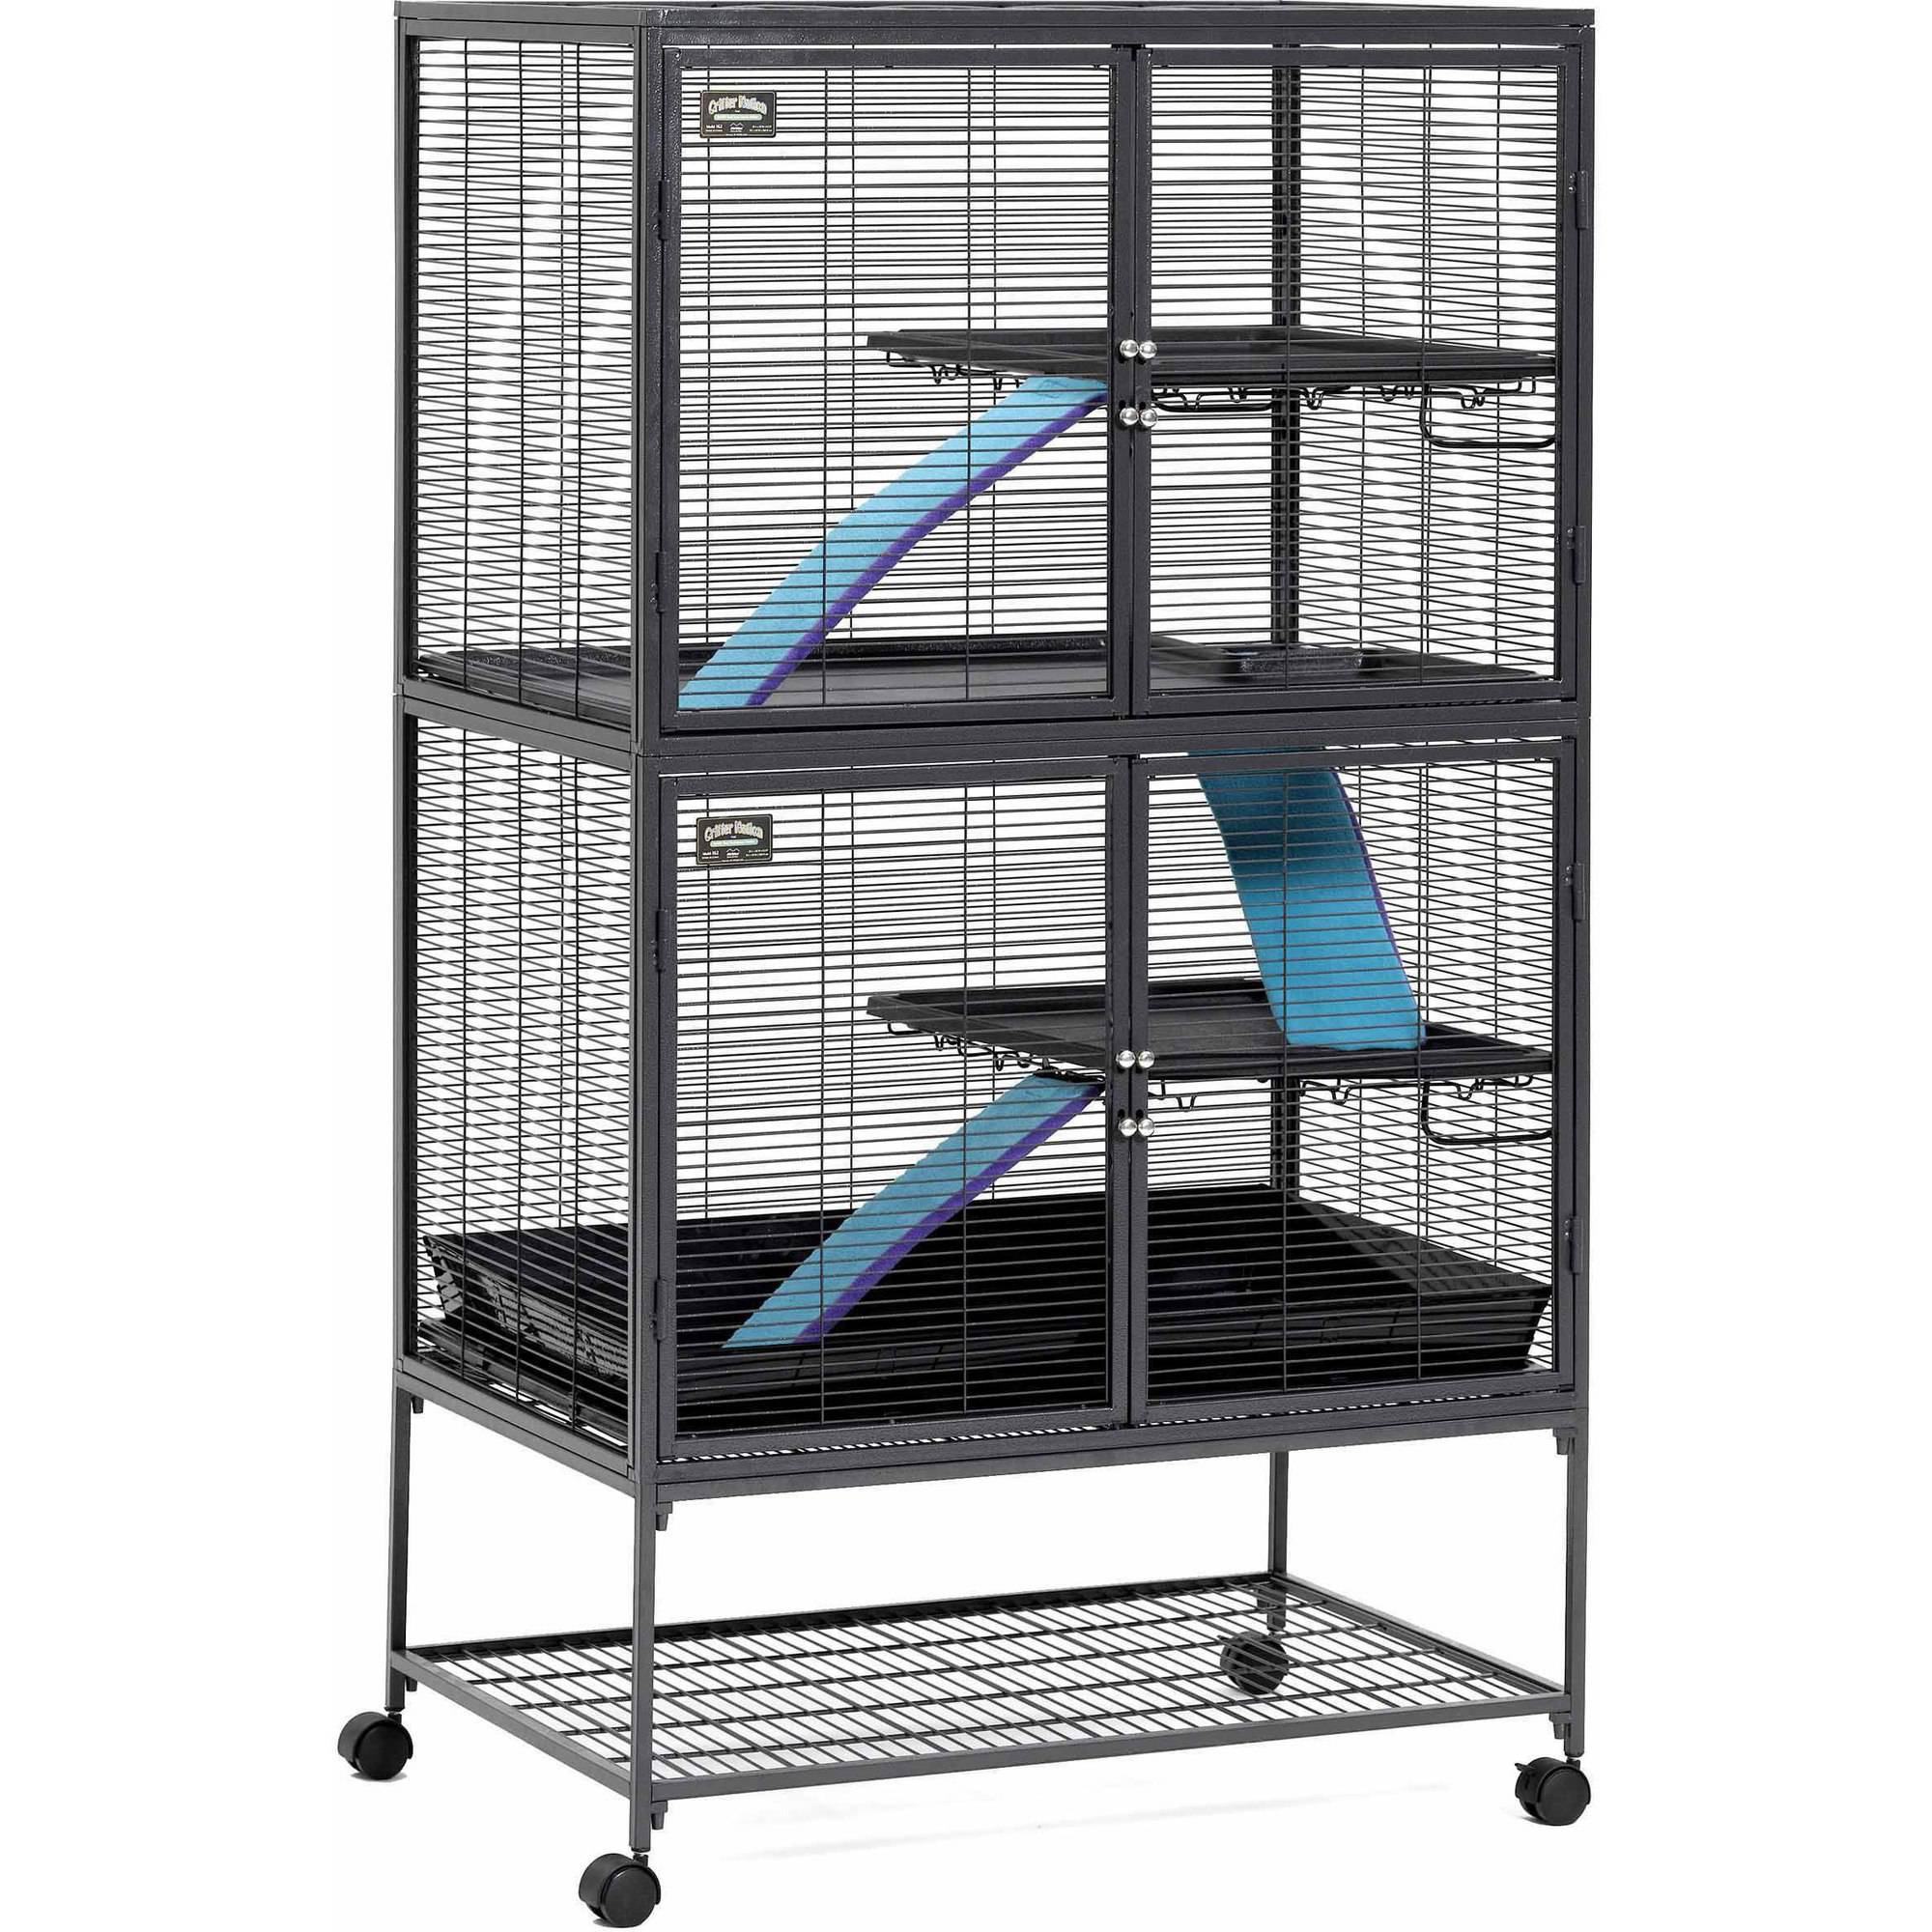 "MidWest Deluxe Critter Nation Double Unit Small Animal Cage (Model 162)36""L x 25""W x 62.5""H"